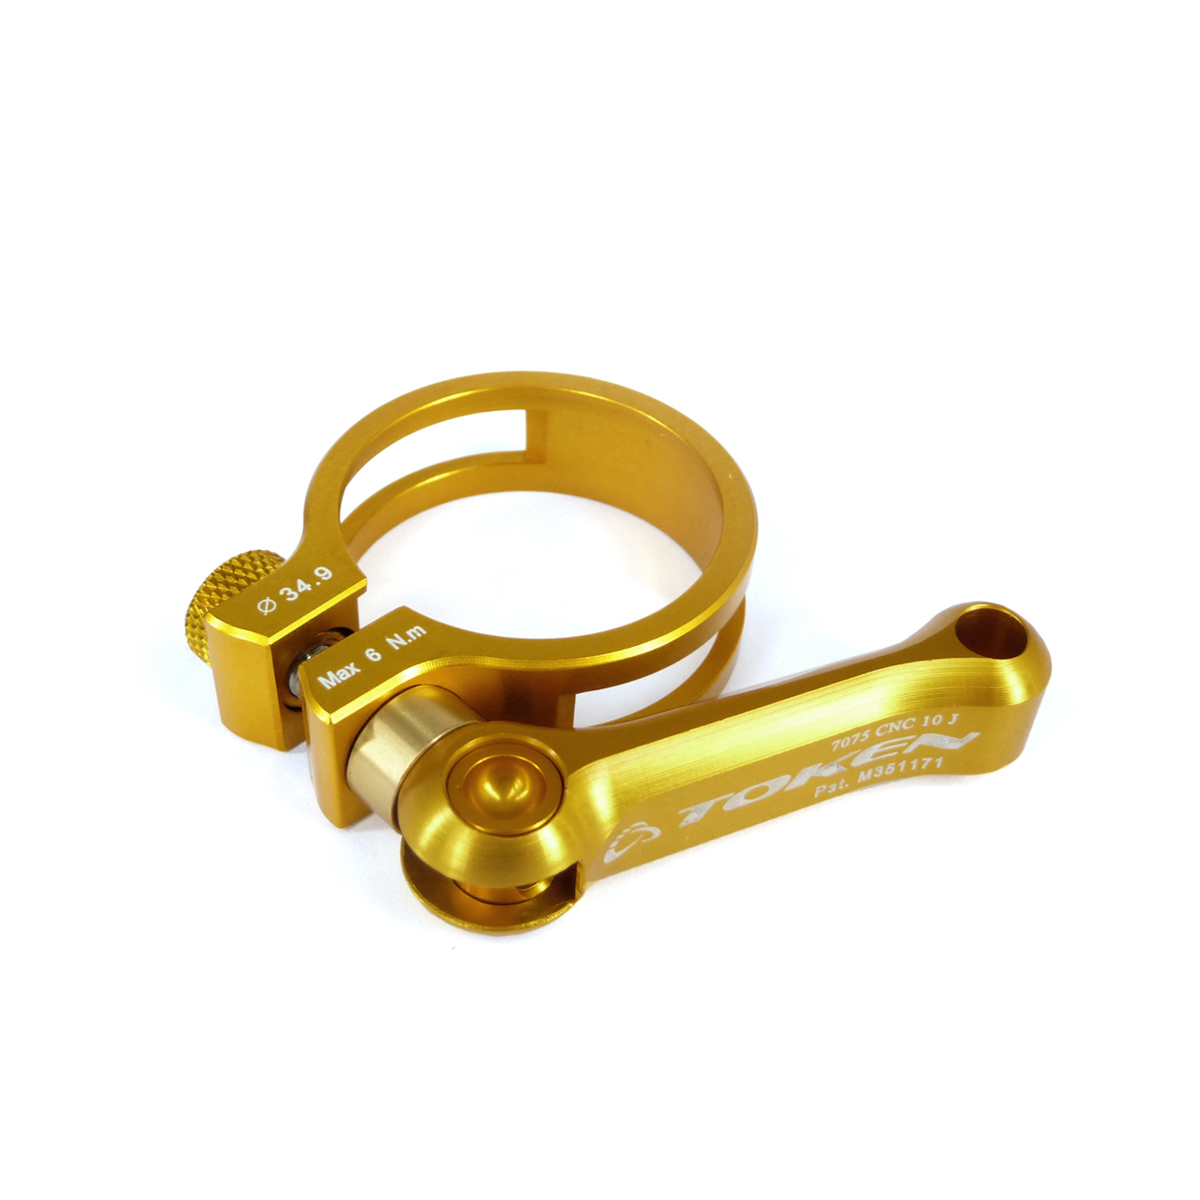 Collier de selle Token blocage rapide 34,9 mm Or